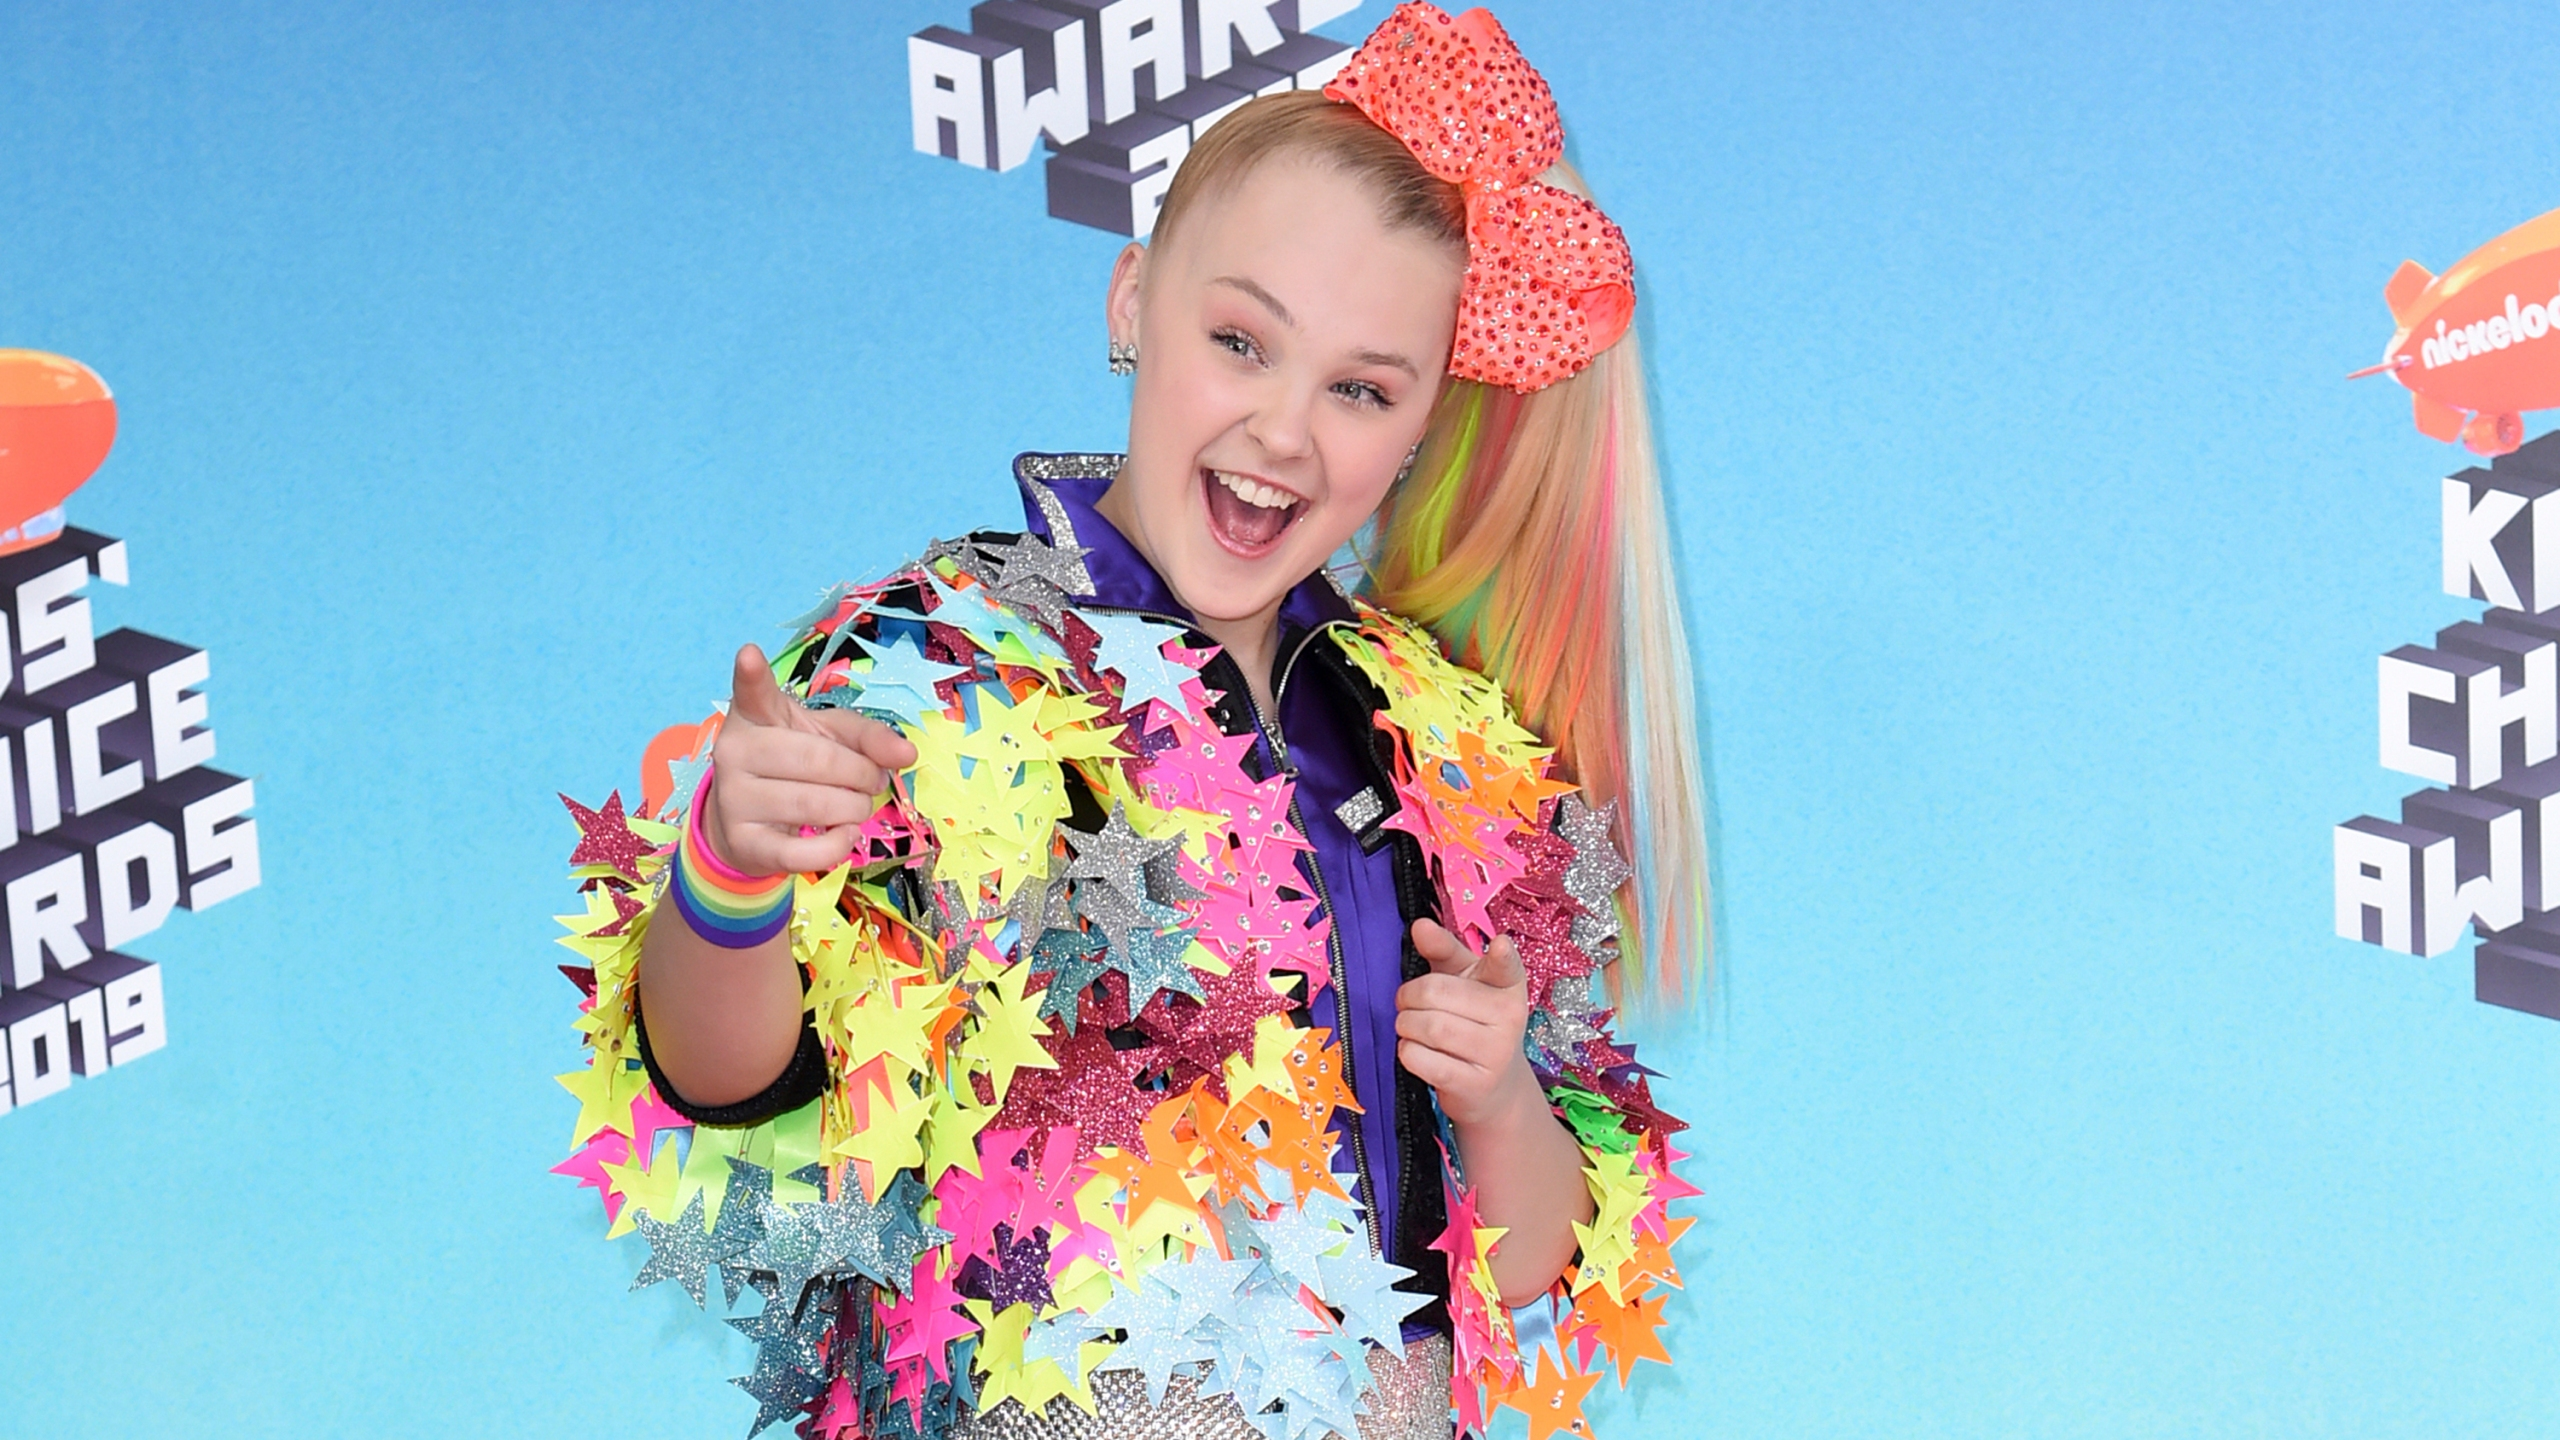 JoJo Siwa arrives at the Nickelodeon Kids' Choice Awards on March 23, 2019, In Los Angeles. (Richard Shotwell/Invision/AP, File)